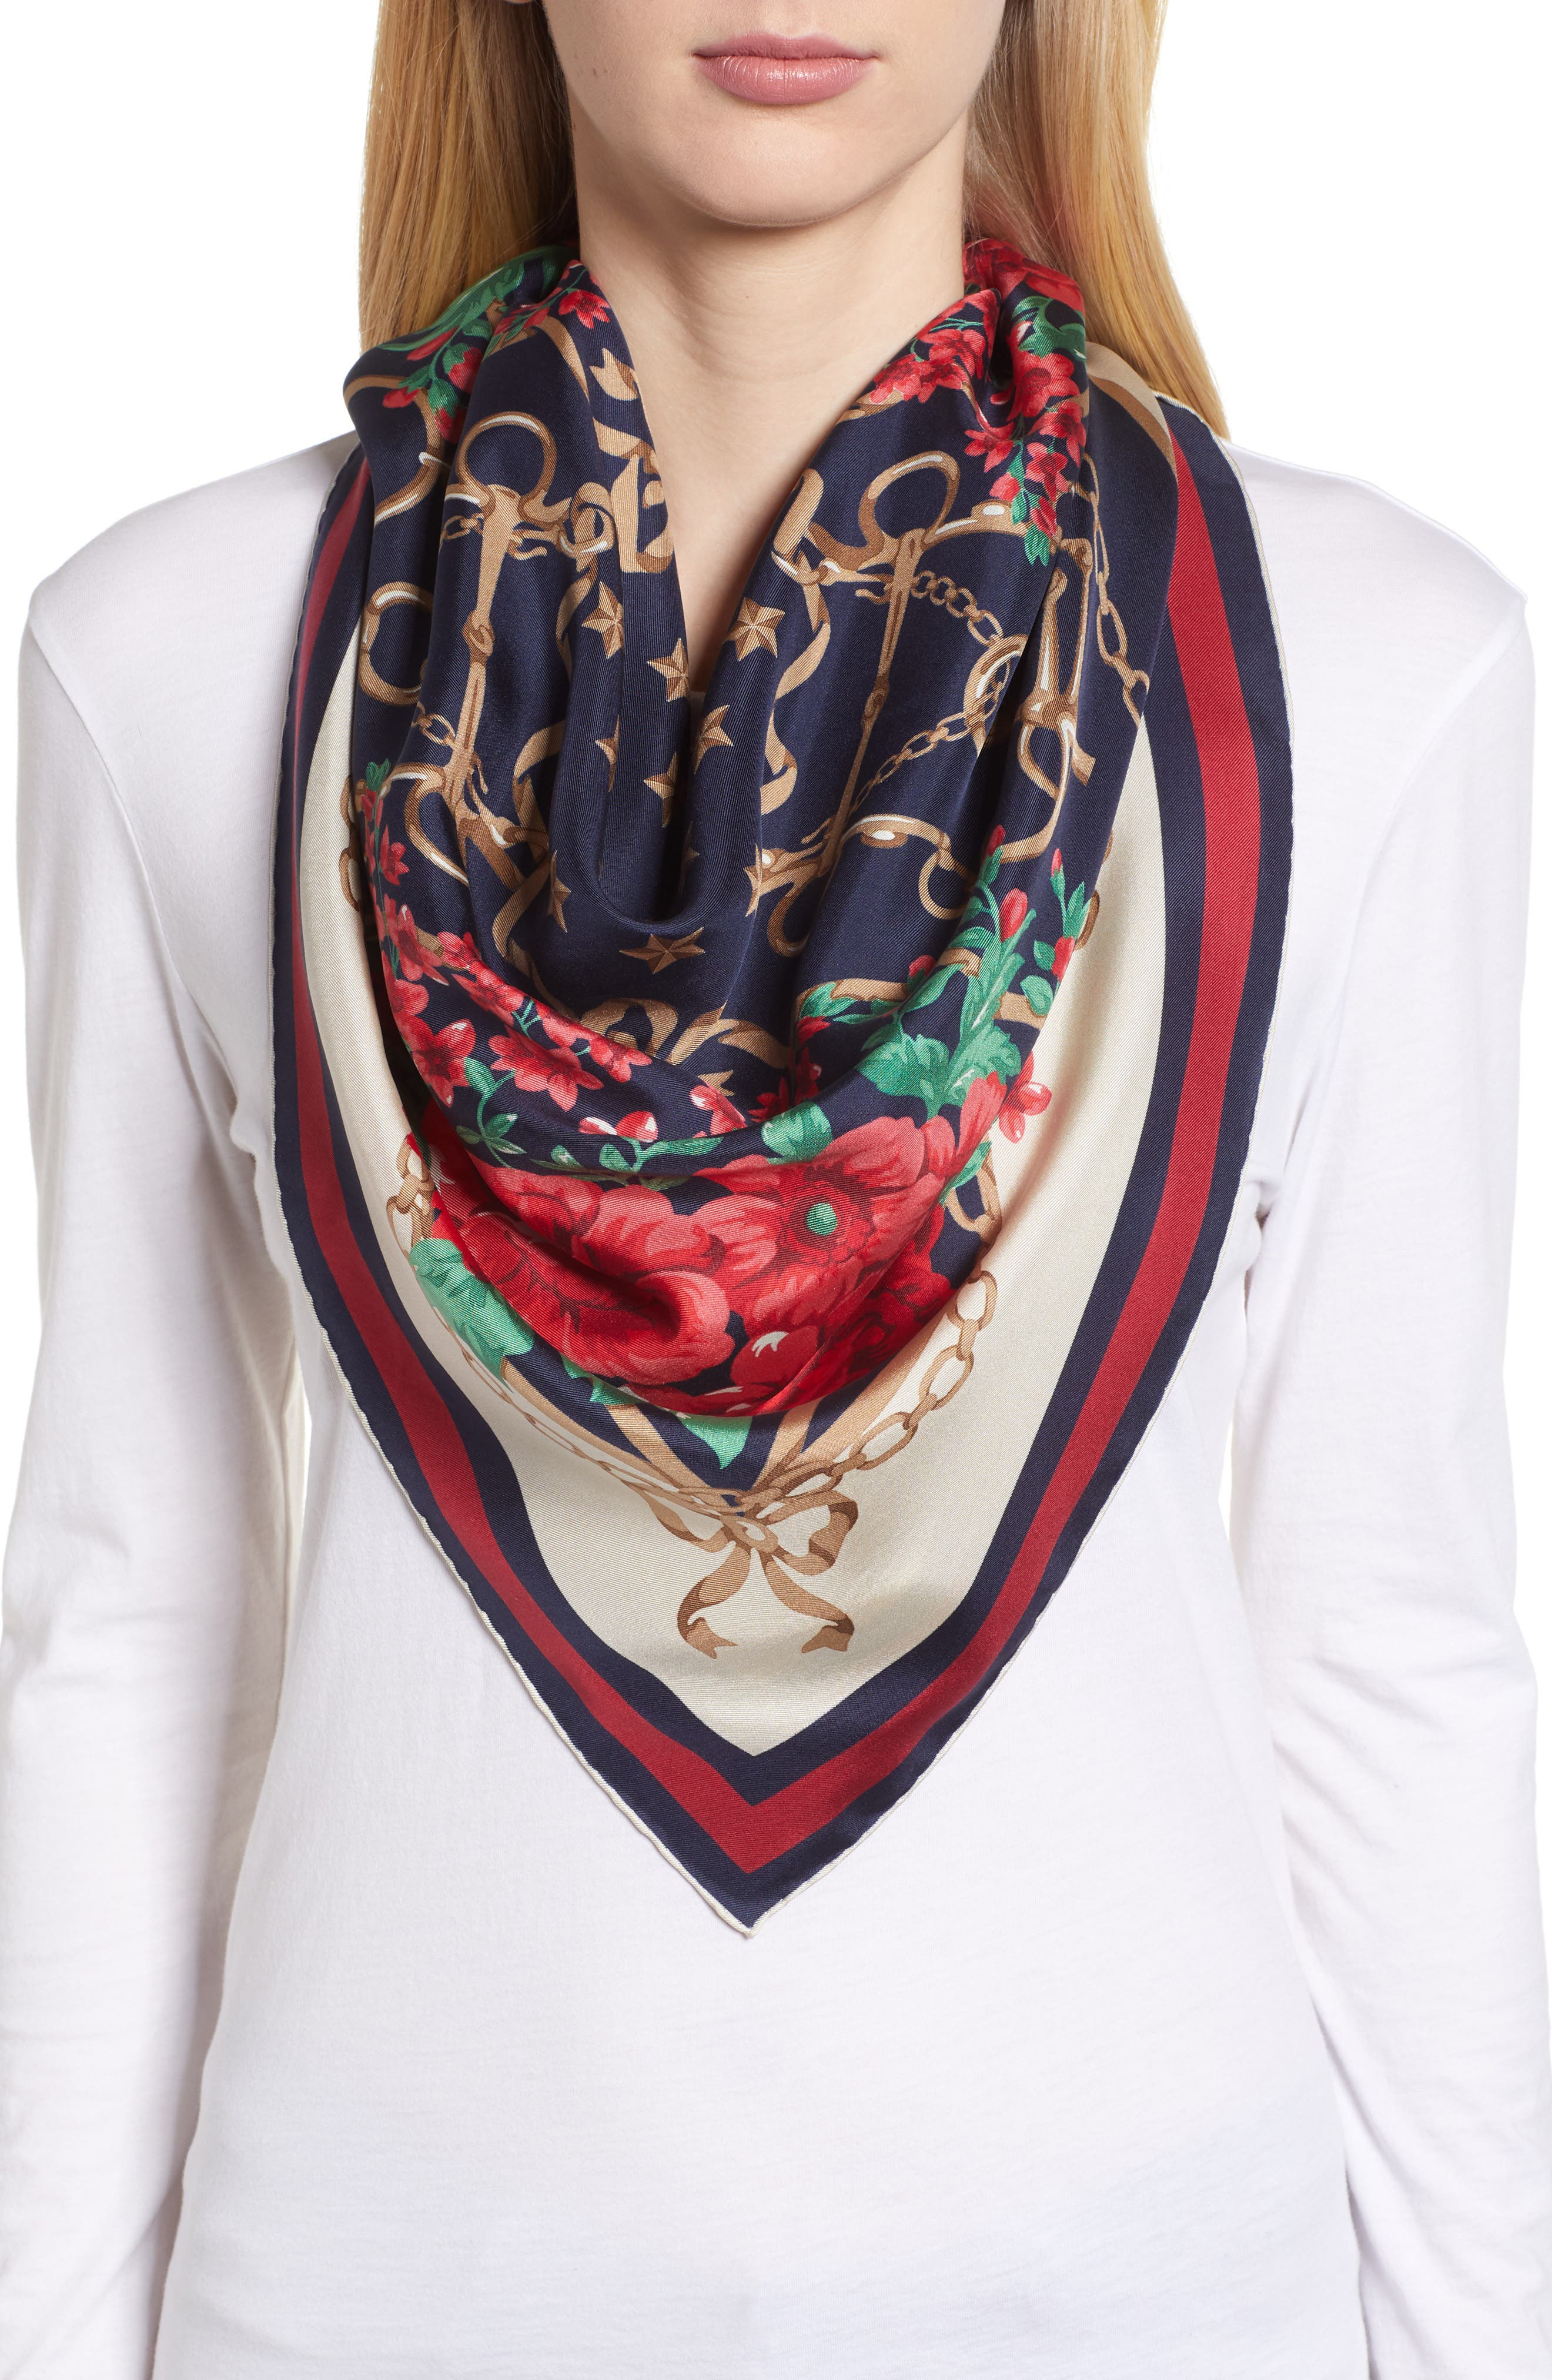 Rose Chain Foulard Silk Twill Scarf,                             Alternate thumbnail 5, color,                             MIGHTNIGHT BLUE/ RED